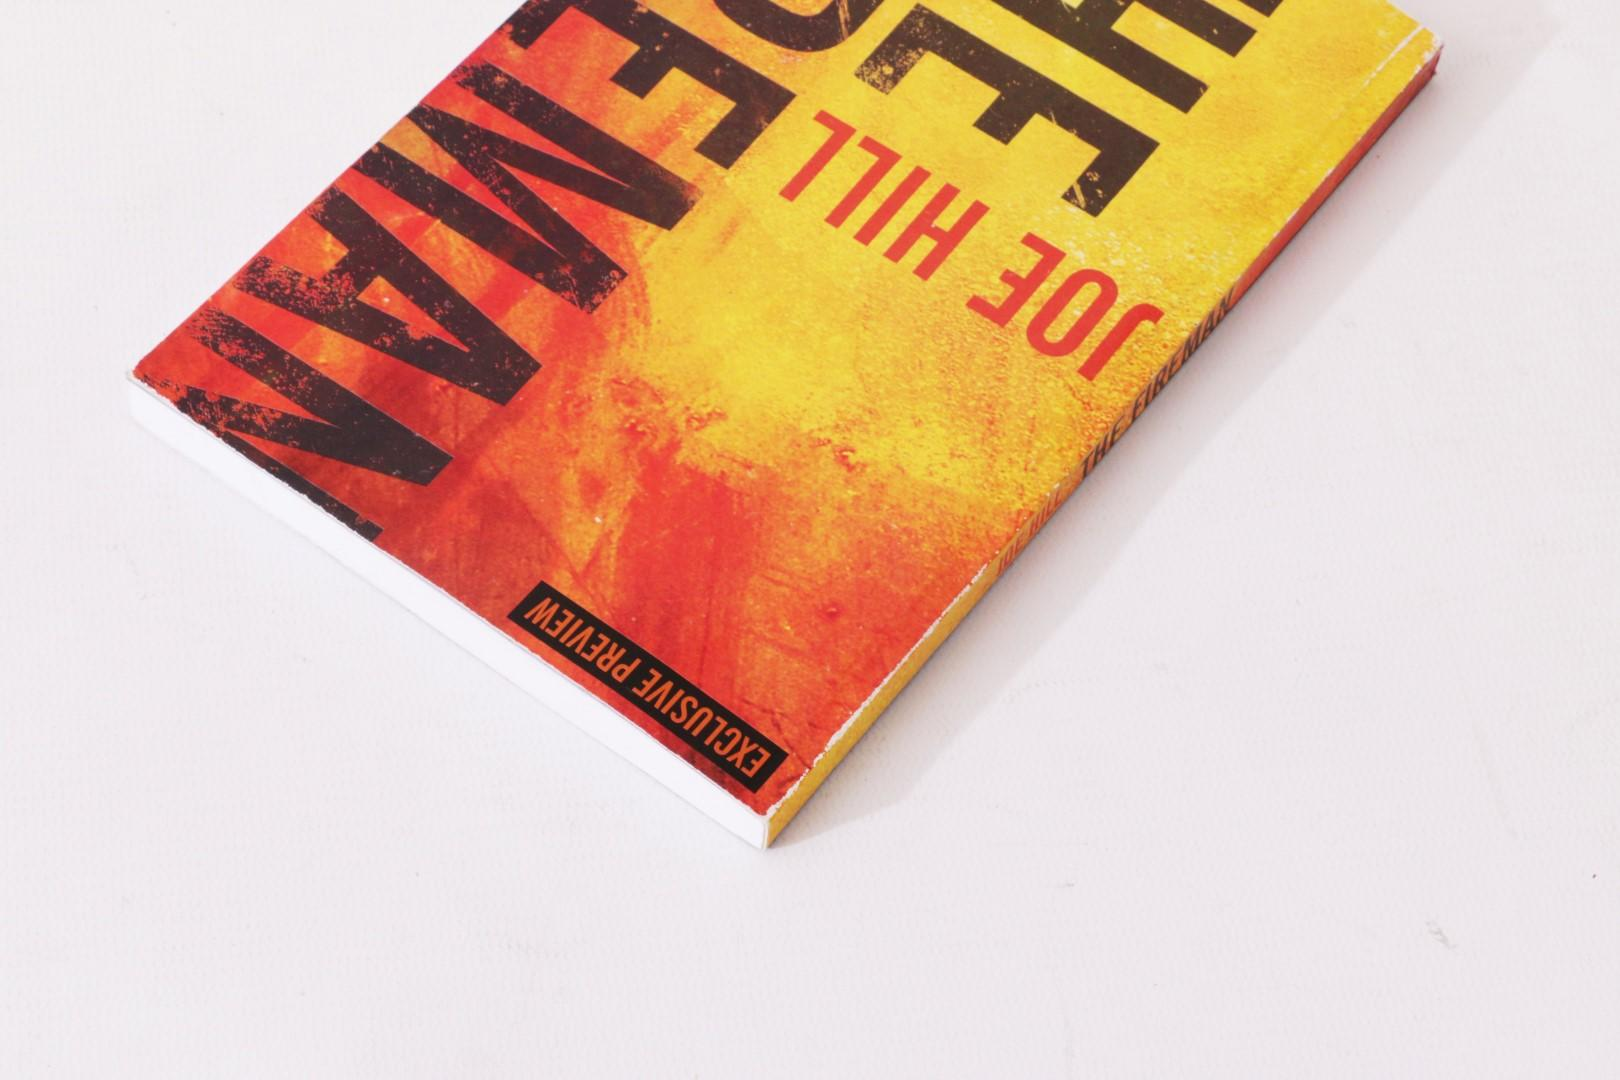 Joe Hill - The Fireman - Gollancz, 2016, Proof.